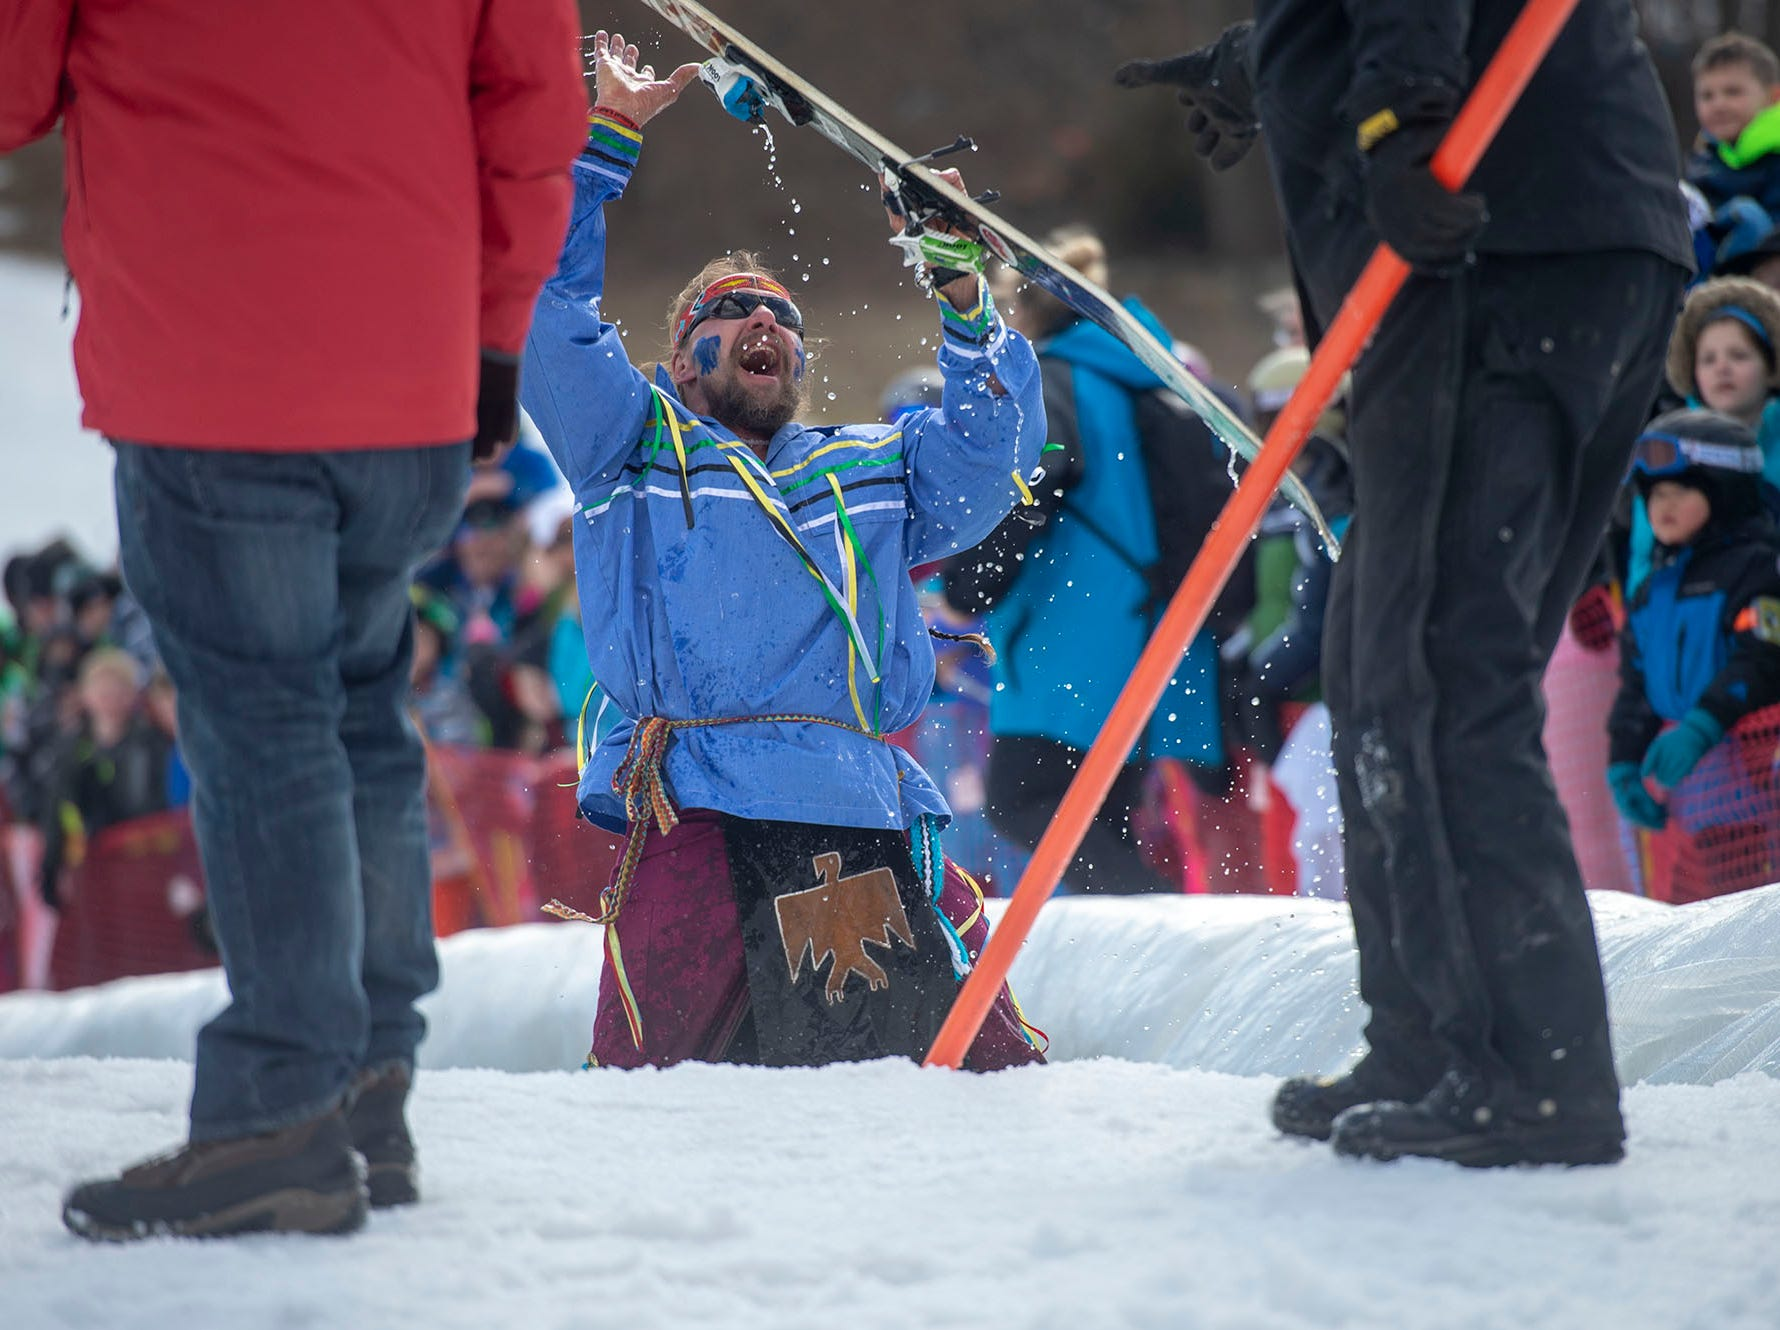 A participant wearing Native American garb shows that is OK after crashing and burning in the pond at Roundtop Moutain Resort on Saturday, March 16, 2019.